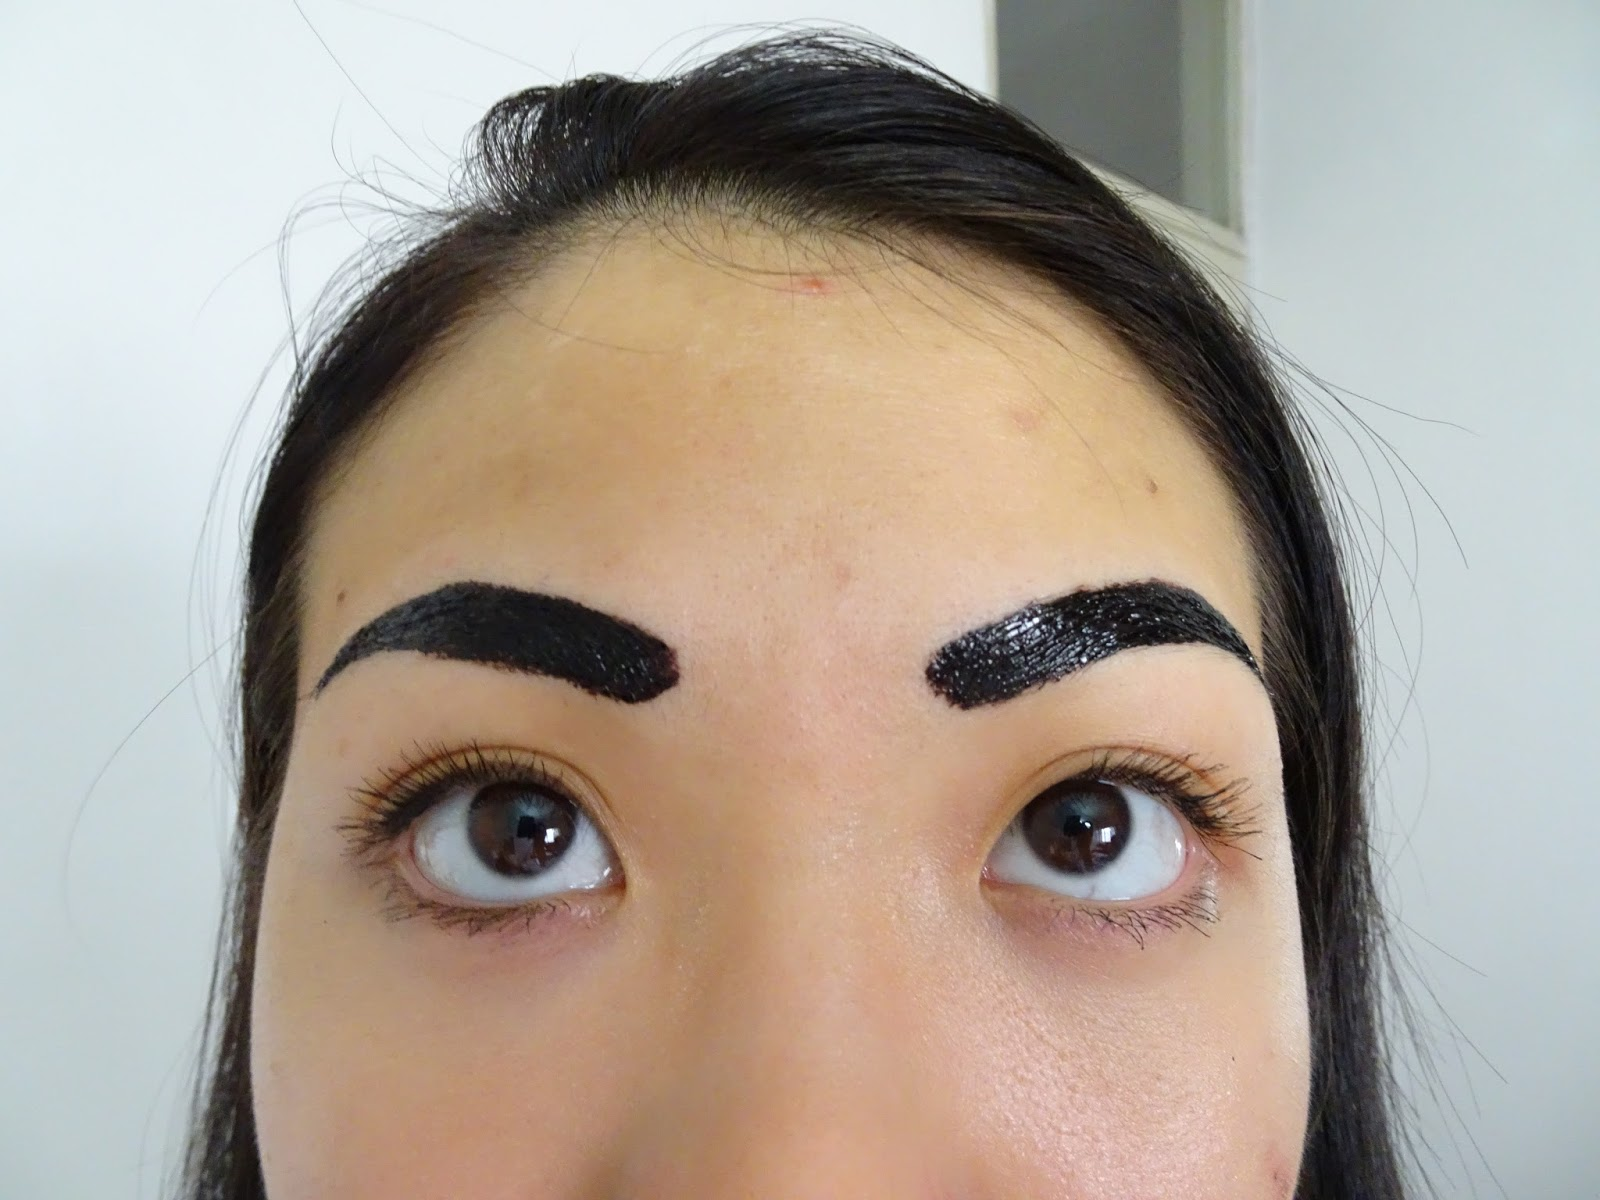 c5863007659 Because I have sparse brows, you can REALLY see the tint, whereas I would  think on someone with relatively fuller brows, your natural brow hair would  well, ...